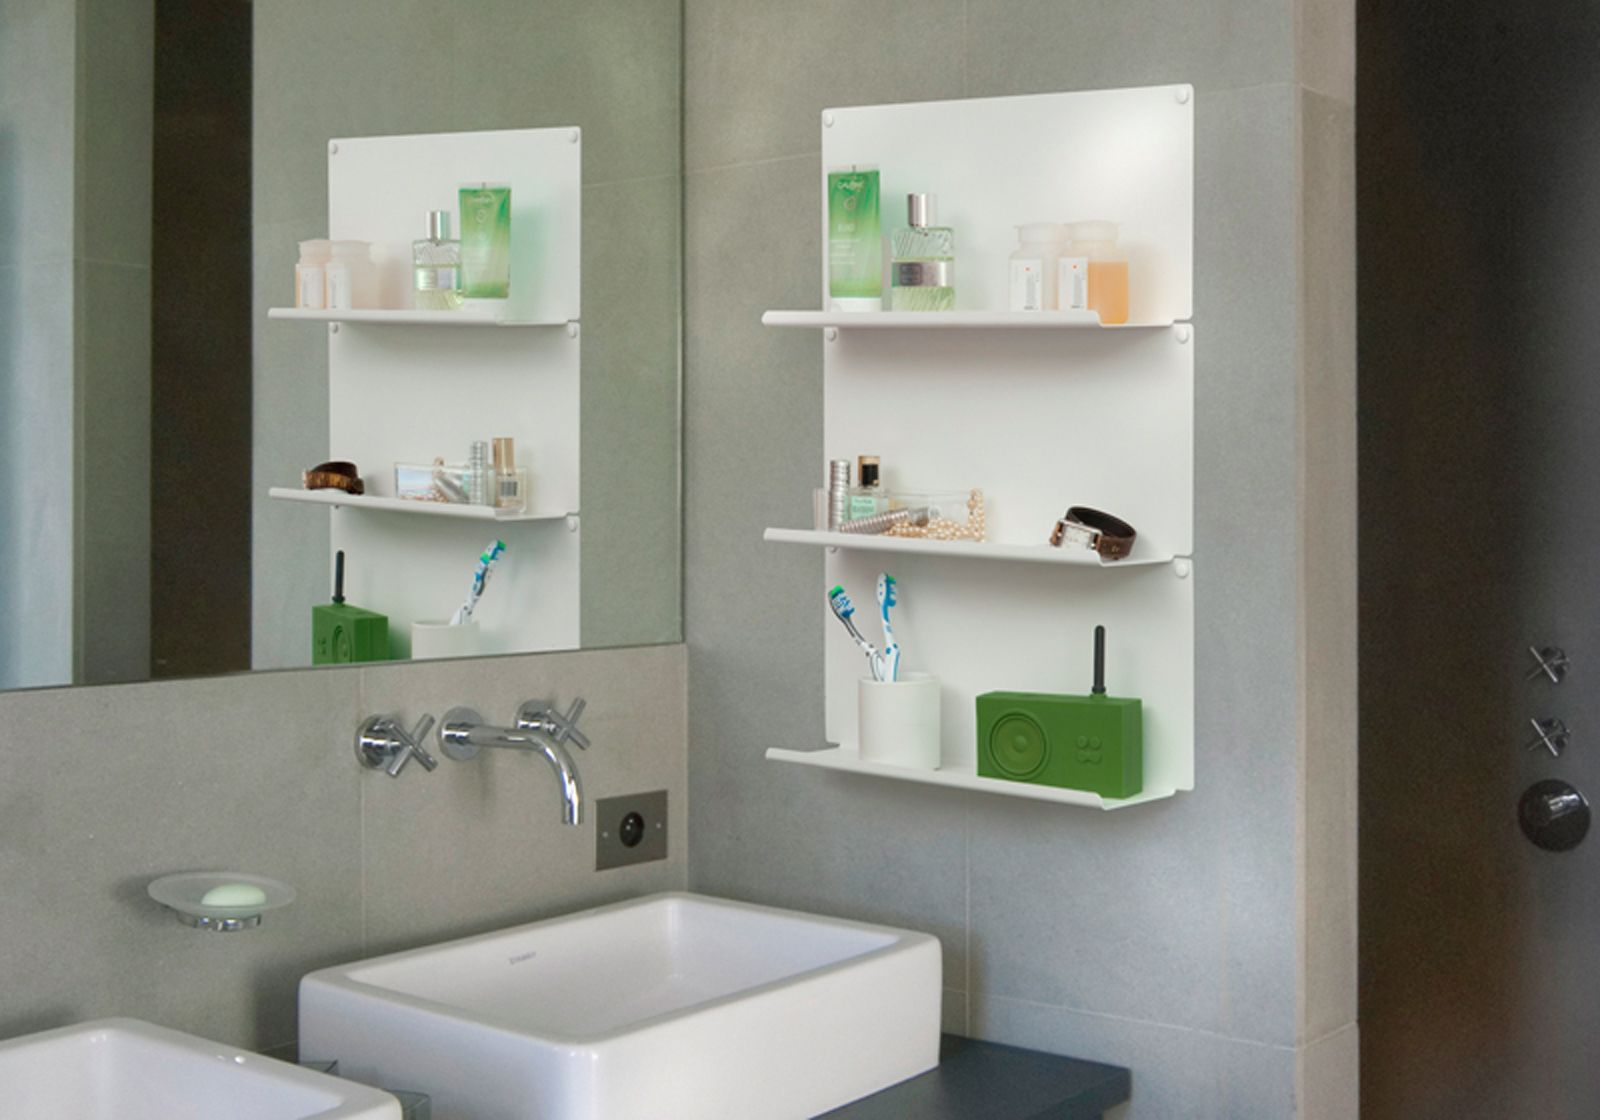 Bathroom wall shelving